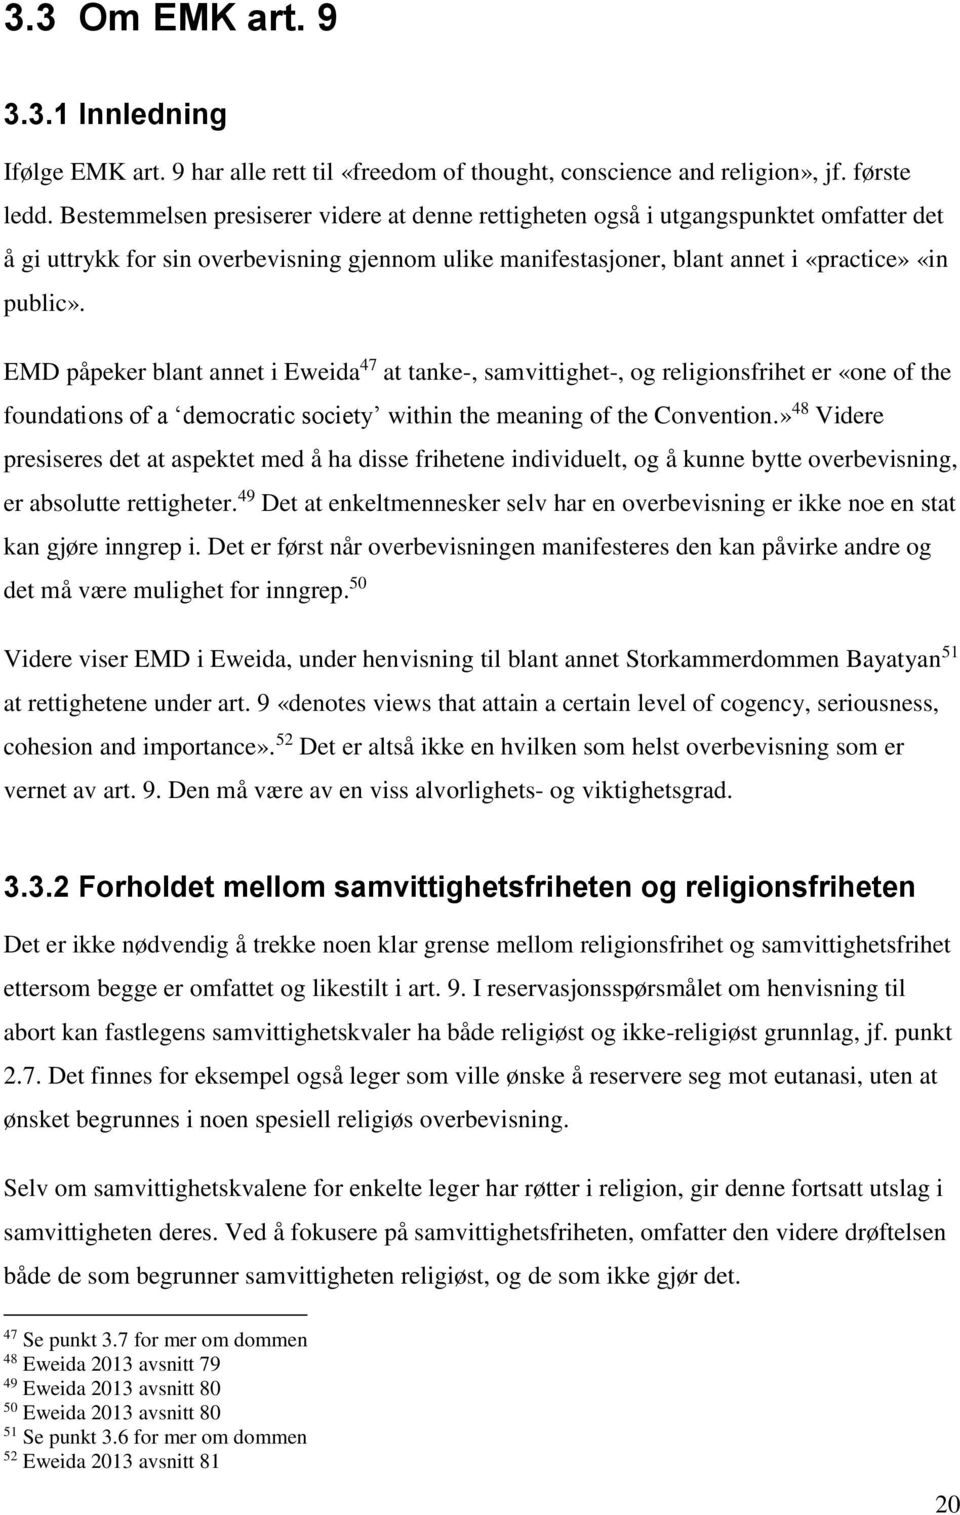 EMD påpeker blant annet i Eweida 47 at tanke-, samvittighet-, og religionsfrihet er «one of the foundations of a democratic society within the meaning of the Convention.